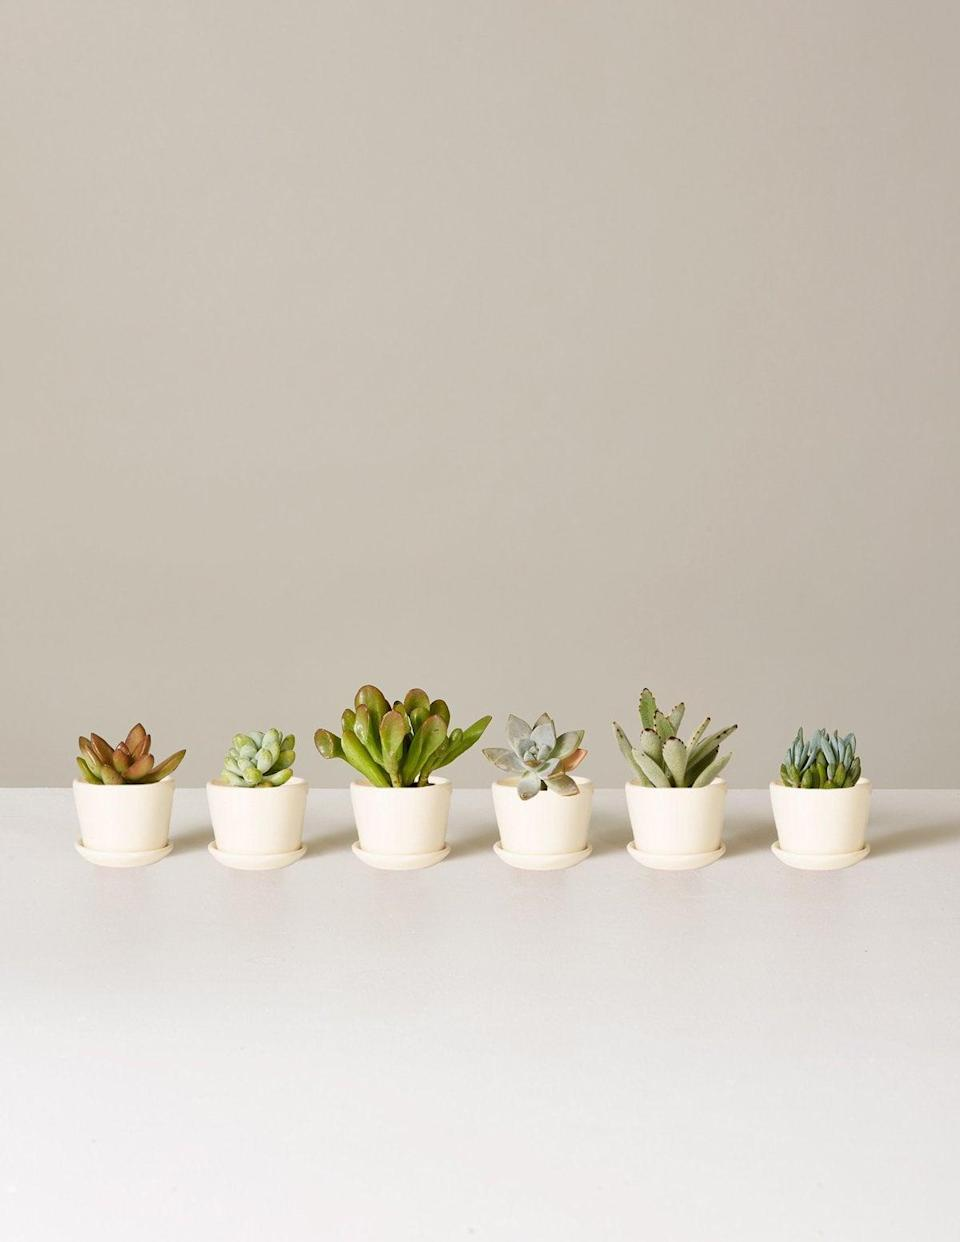 "<h2>Potted Succulent Assortment<br></h2>How does your garden grow? Ideally, no bigger than 2 inches, which is the height of this mini succulent assortment by The Sill. The ceramic pots come in white or black, and are the perfect housewarming gift for someone moving into a bite sized abode. <br><br><strong>The Sill</strong> Potted Succulent Assortment, $, available at <a href=""https://go.skimresources.com/?id=30283X879131&url=https%3A%2F%2Fwww.thesill.com%2Fproducts%2Fpotted-succulent-assortment"" rel=""nofollow noopener"" target=""_blank"" data-ylk=""slk:The Sill"" class=""link rapid-noclick-resp"">The Sill</a>"